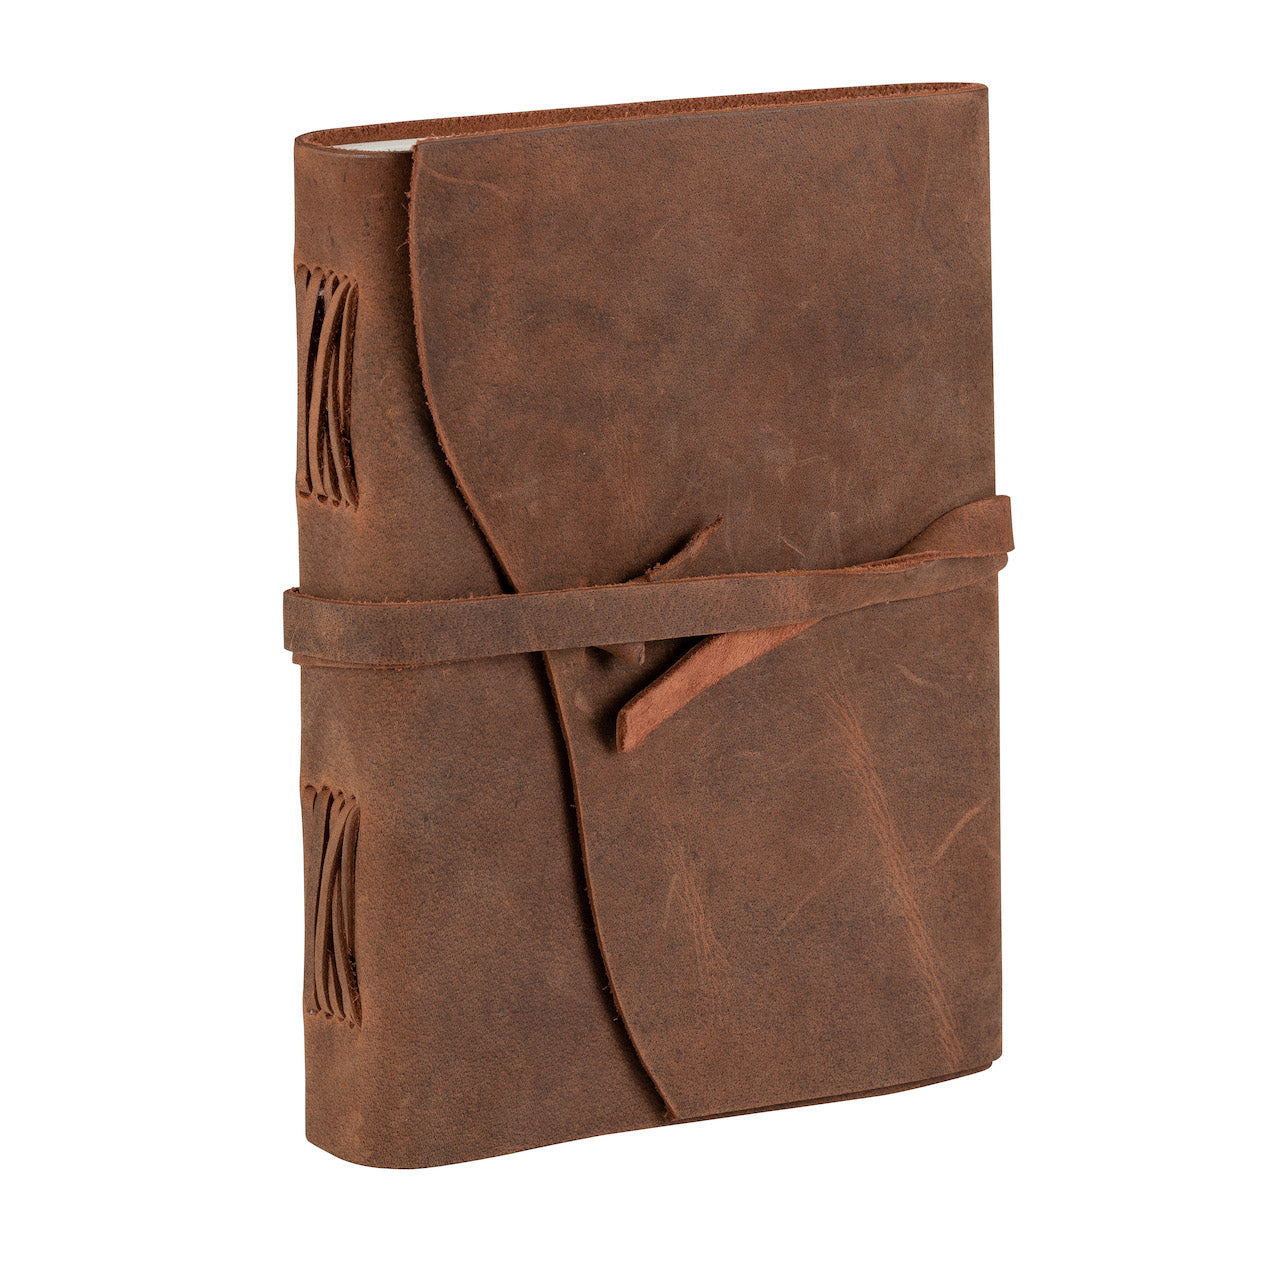 Tuk Tuk Press Antique Light Tan Buffalo Leather Journal. Journal has a full strap and is closed.